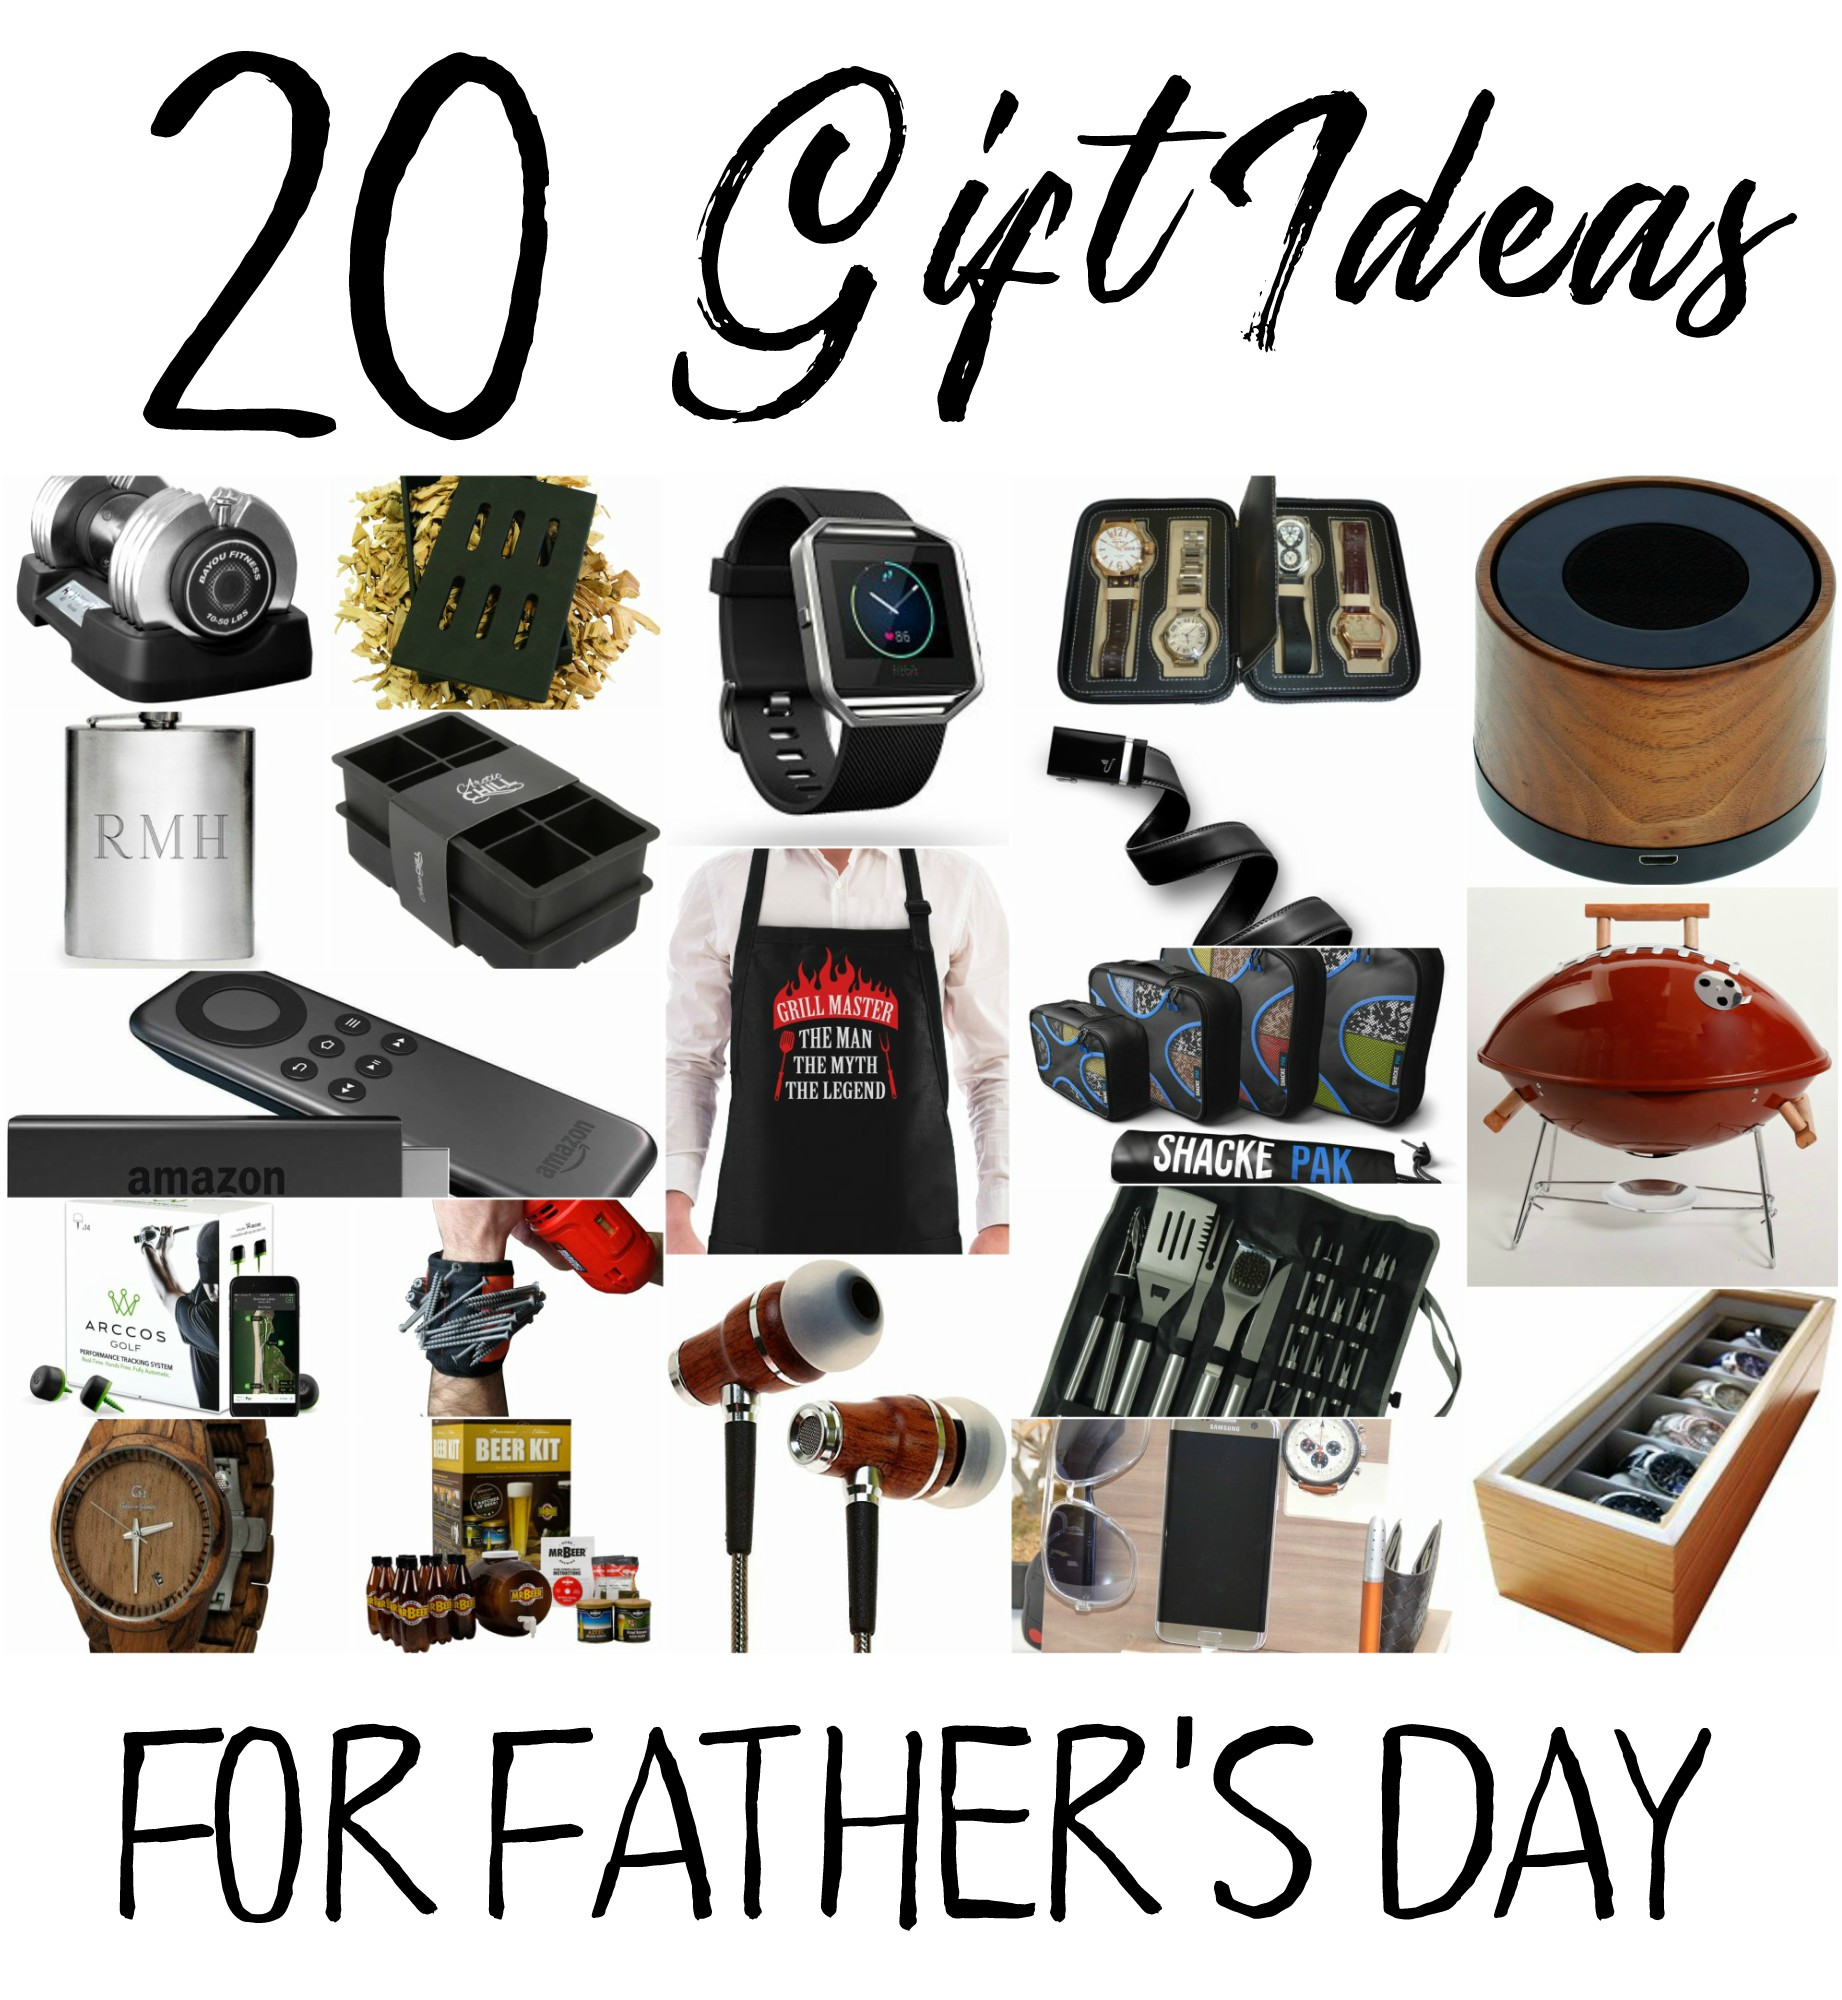 Don't know what to get dad/hubby for Father's Day? Don't stress it I have gathered up 20 gift ideas for the special man in your life.